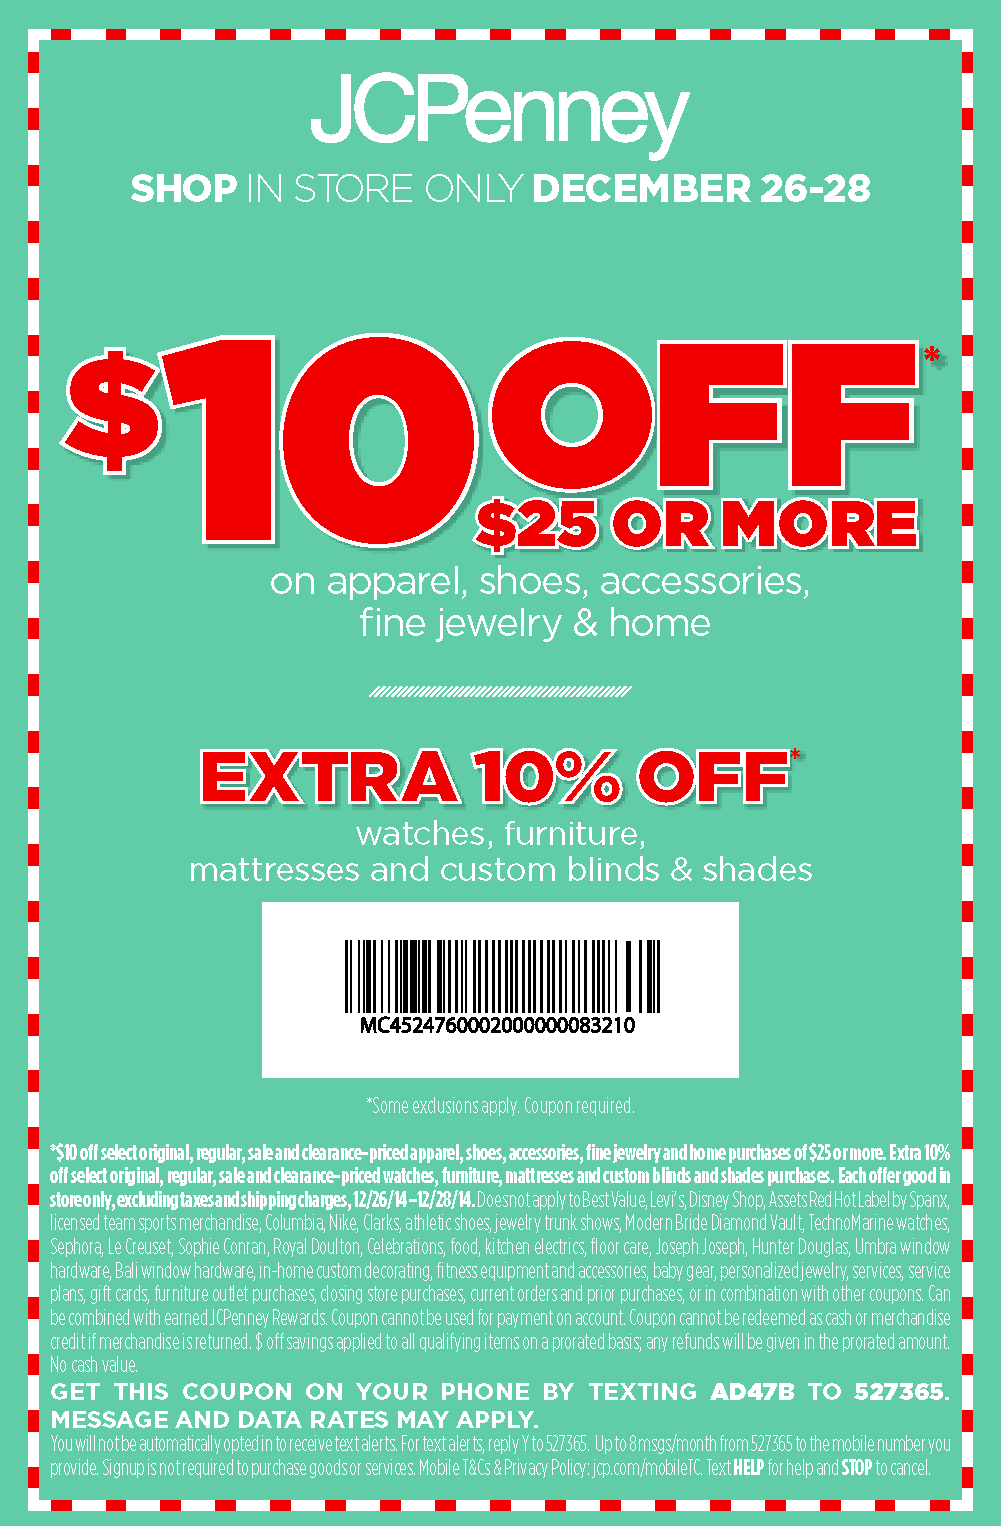 Woot $10 coupon code